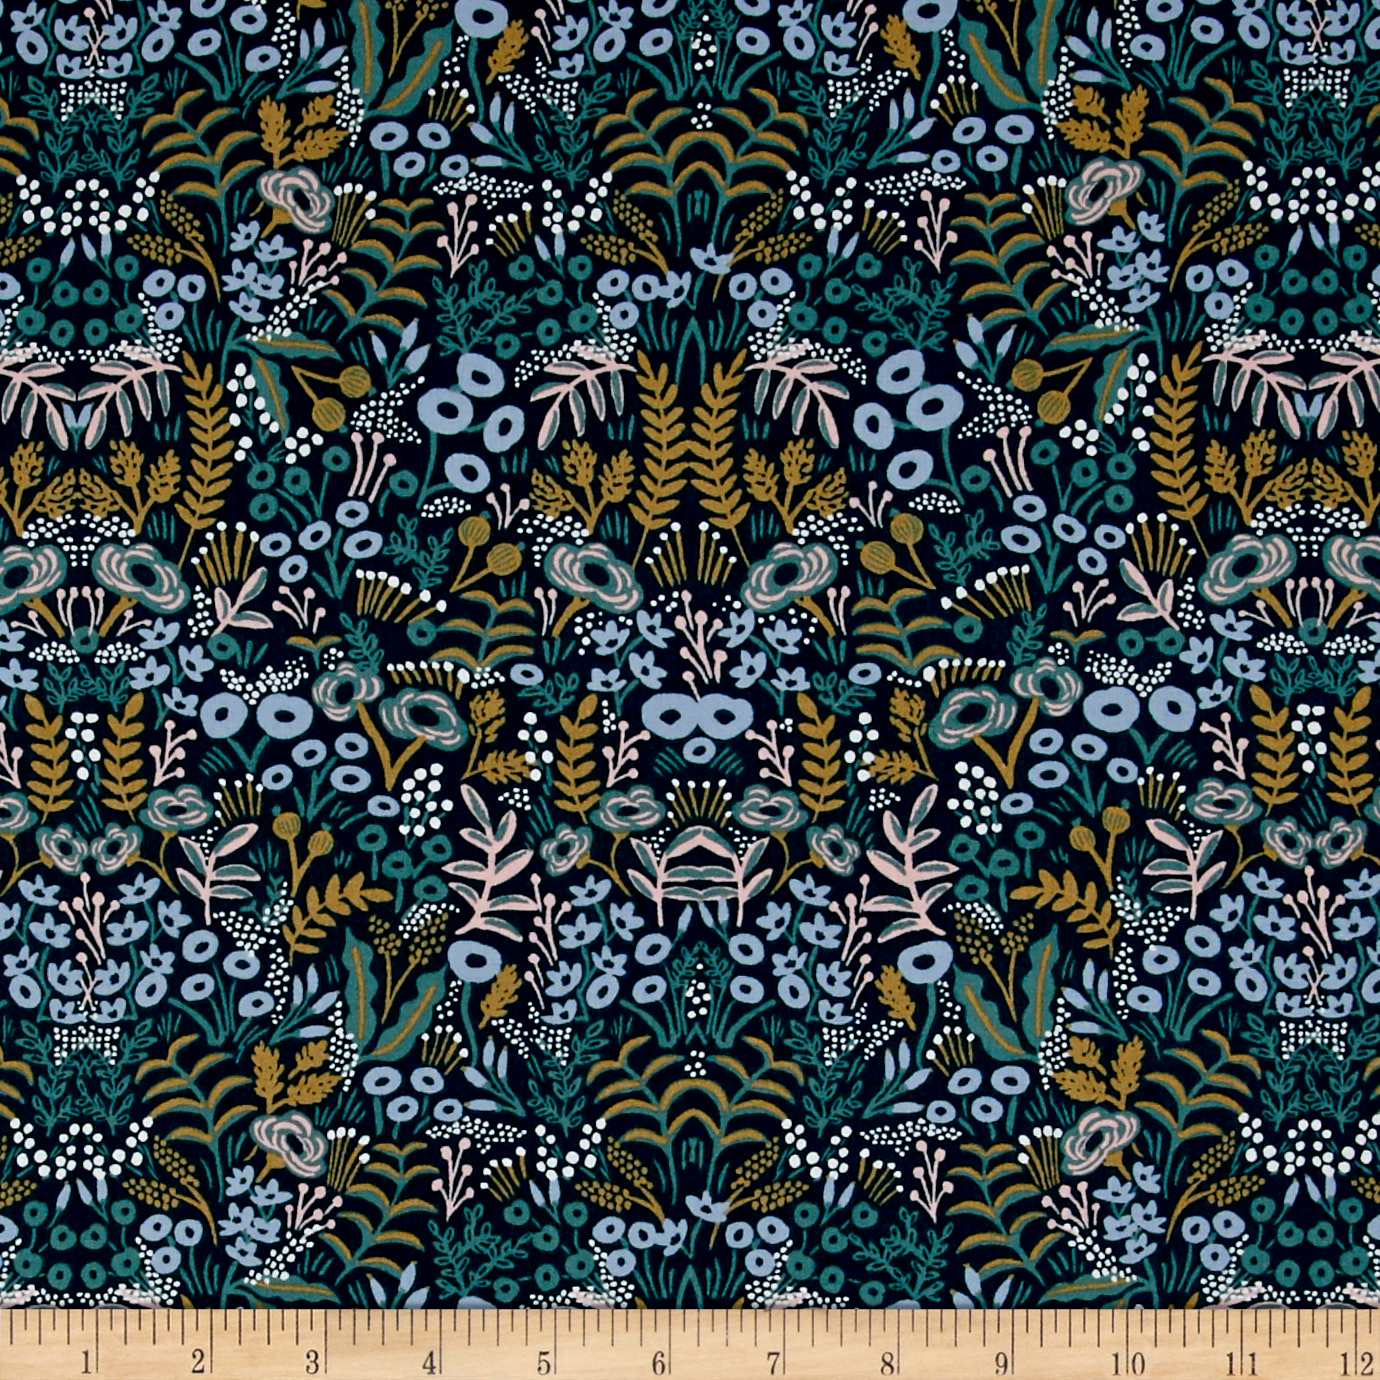 Image of Cotton + Steel Rifle Paper Co. Menagerie Rayon Tapestry Navy Fabric